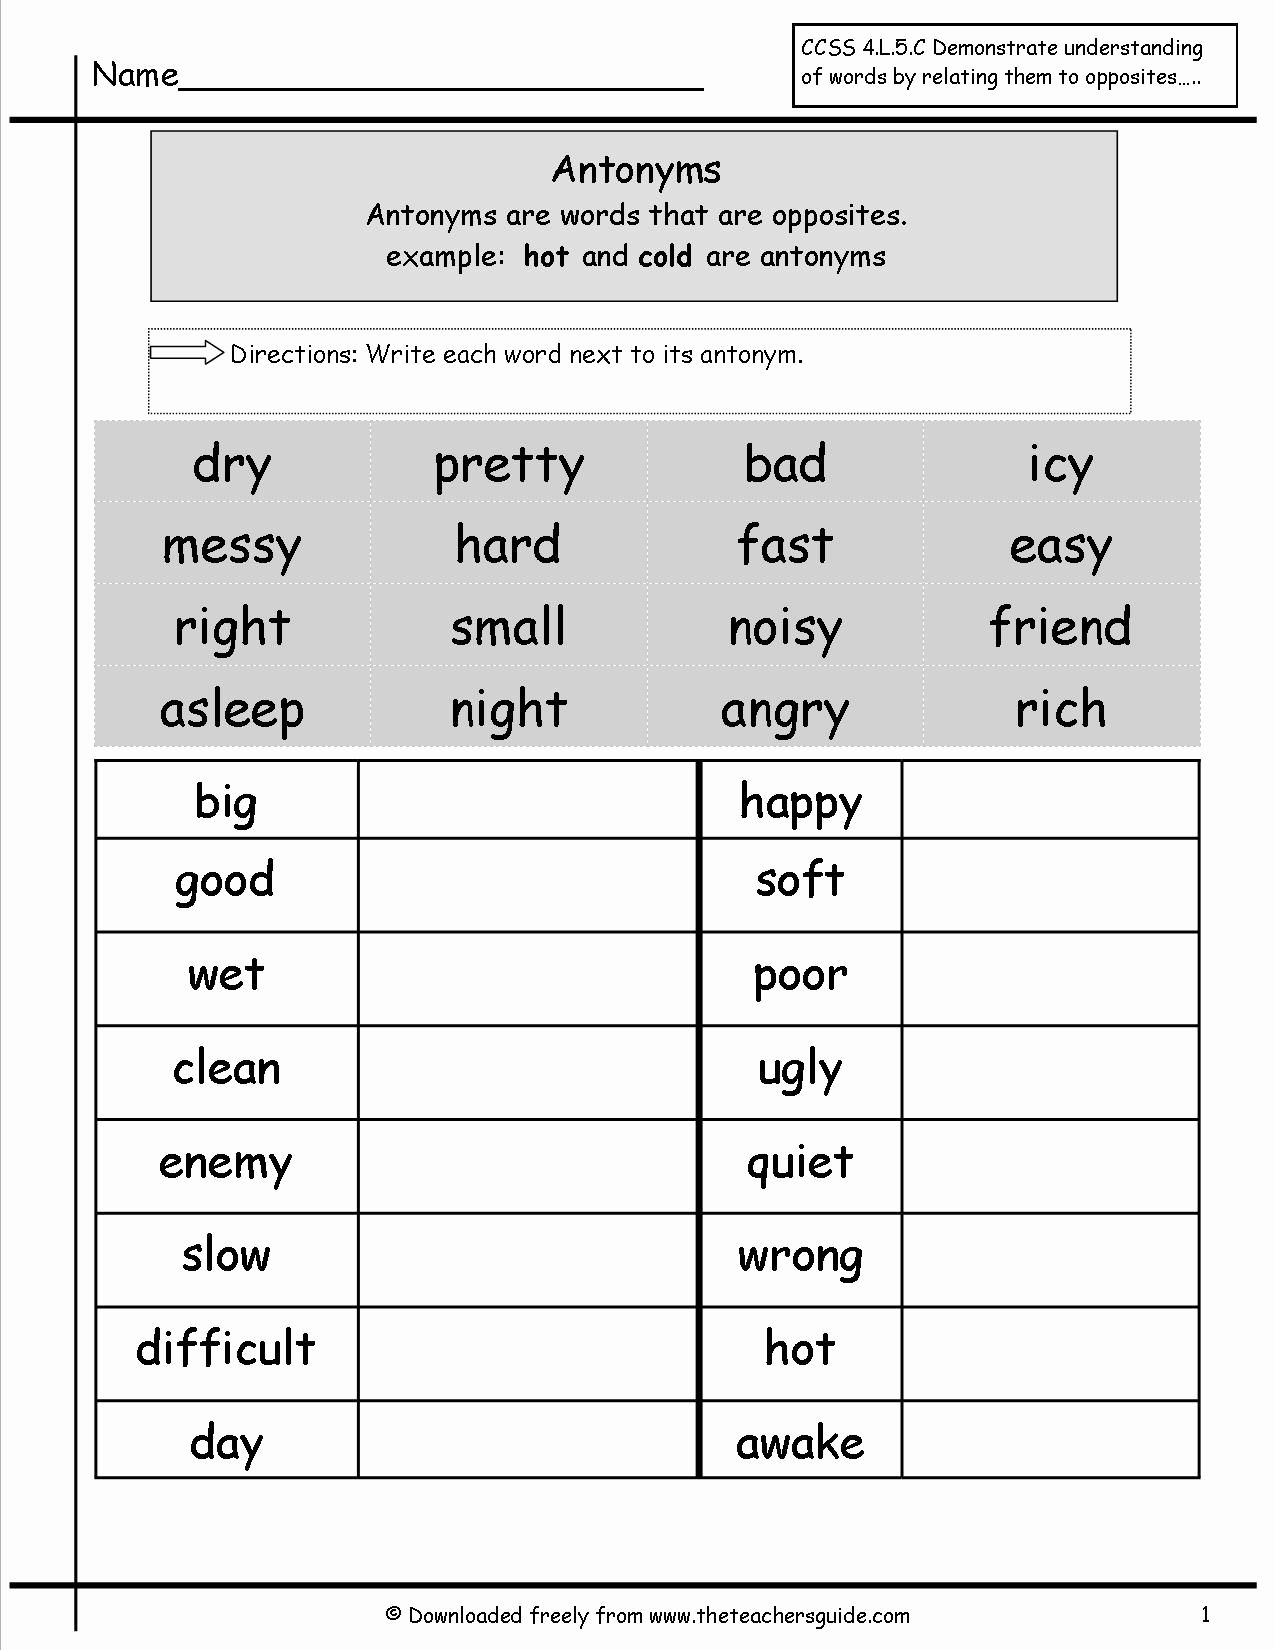 Antonyms Worksheets Grade 2 Best Of 18 Best Images Of 1st Grade Worksheets  Synonyms Antony…   Third grade grammar worksheets [ 1650 x 1275 Pixel ]